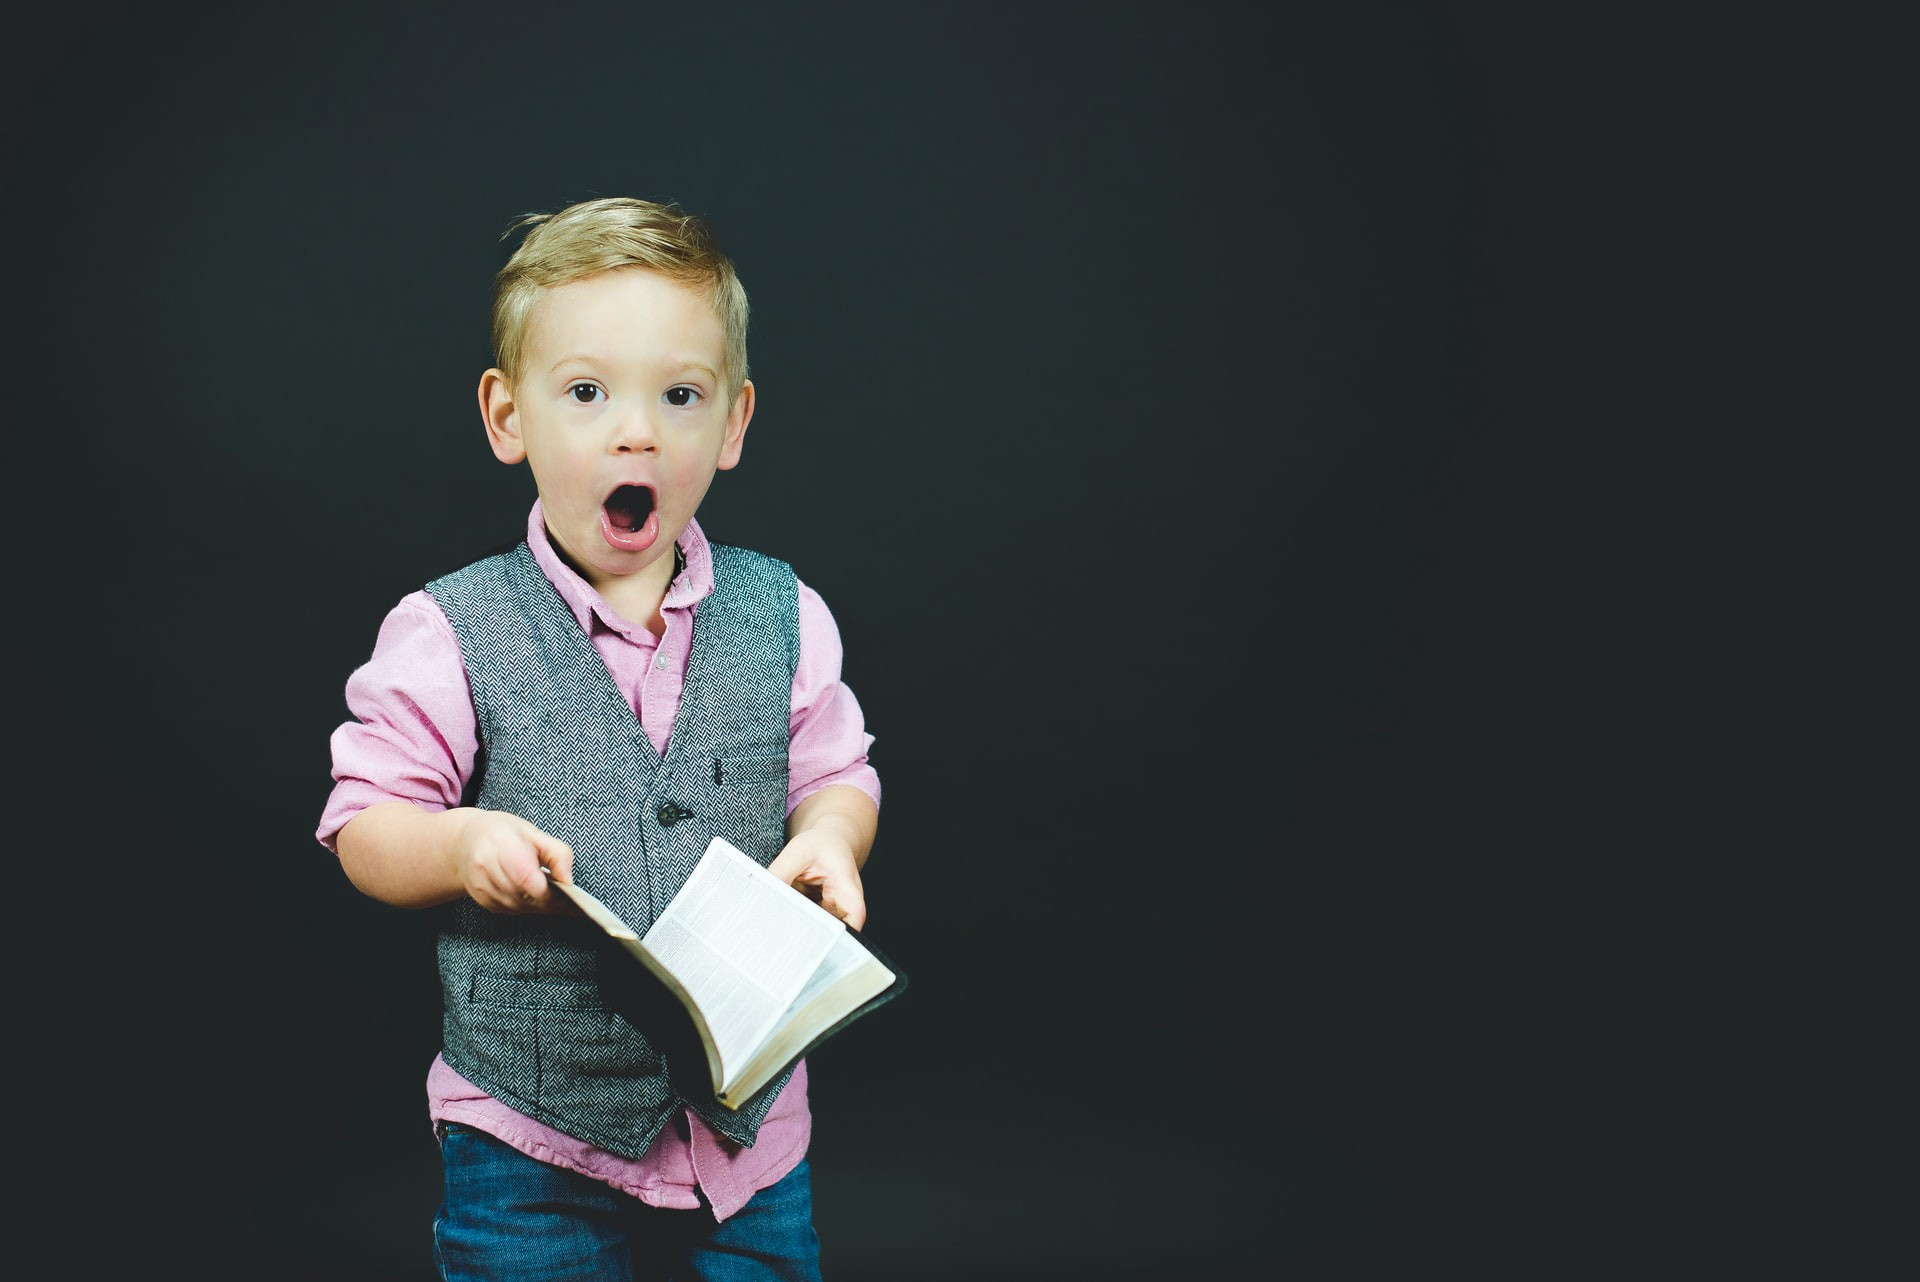 child holding a book with eyes and mouth open wide with surprise